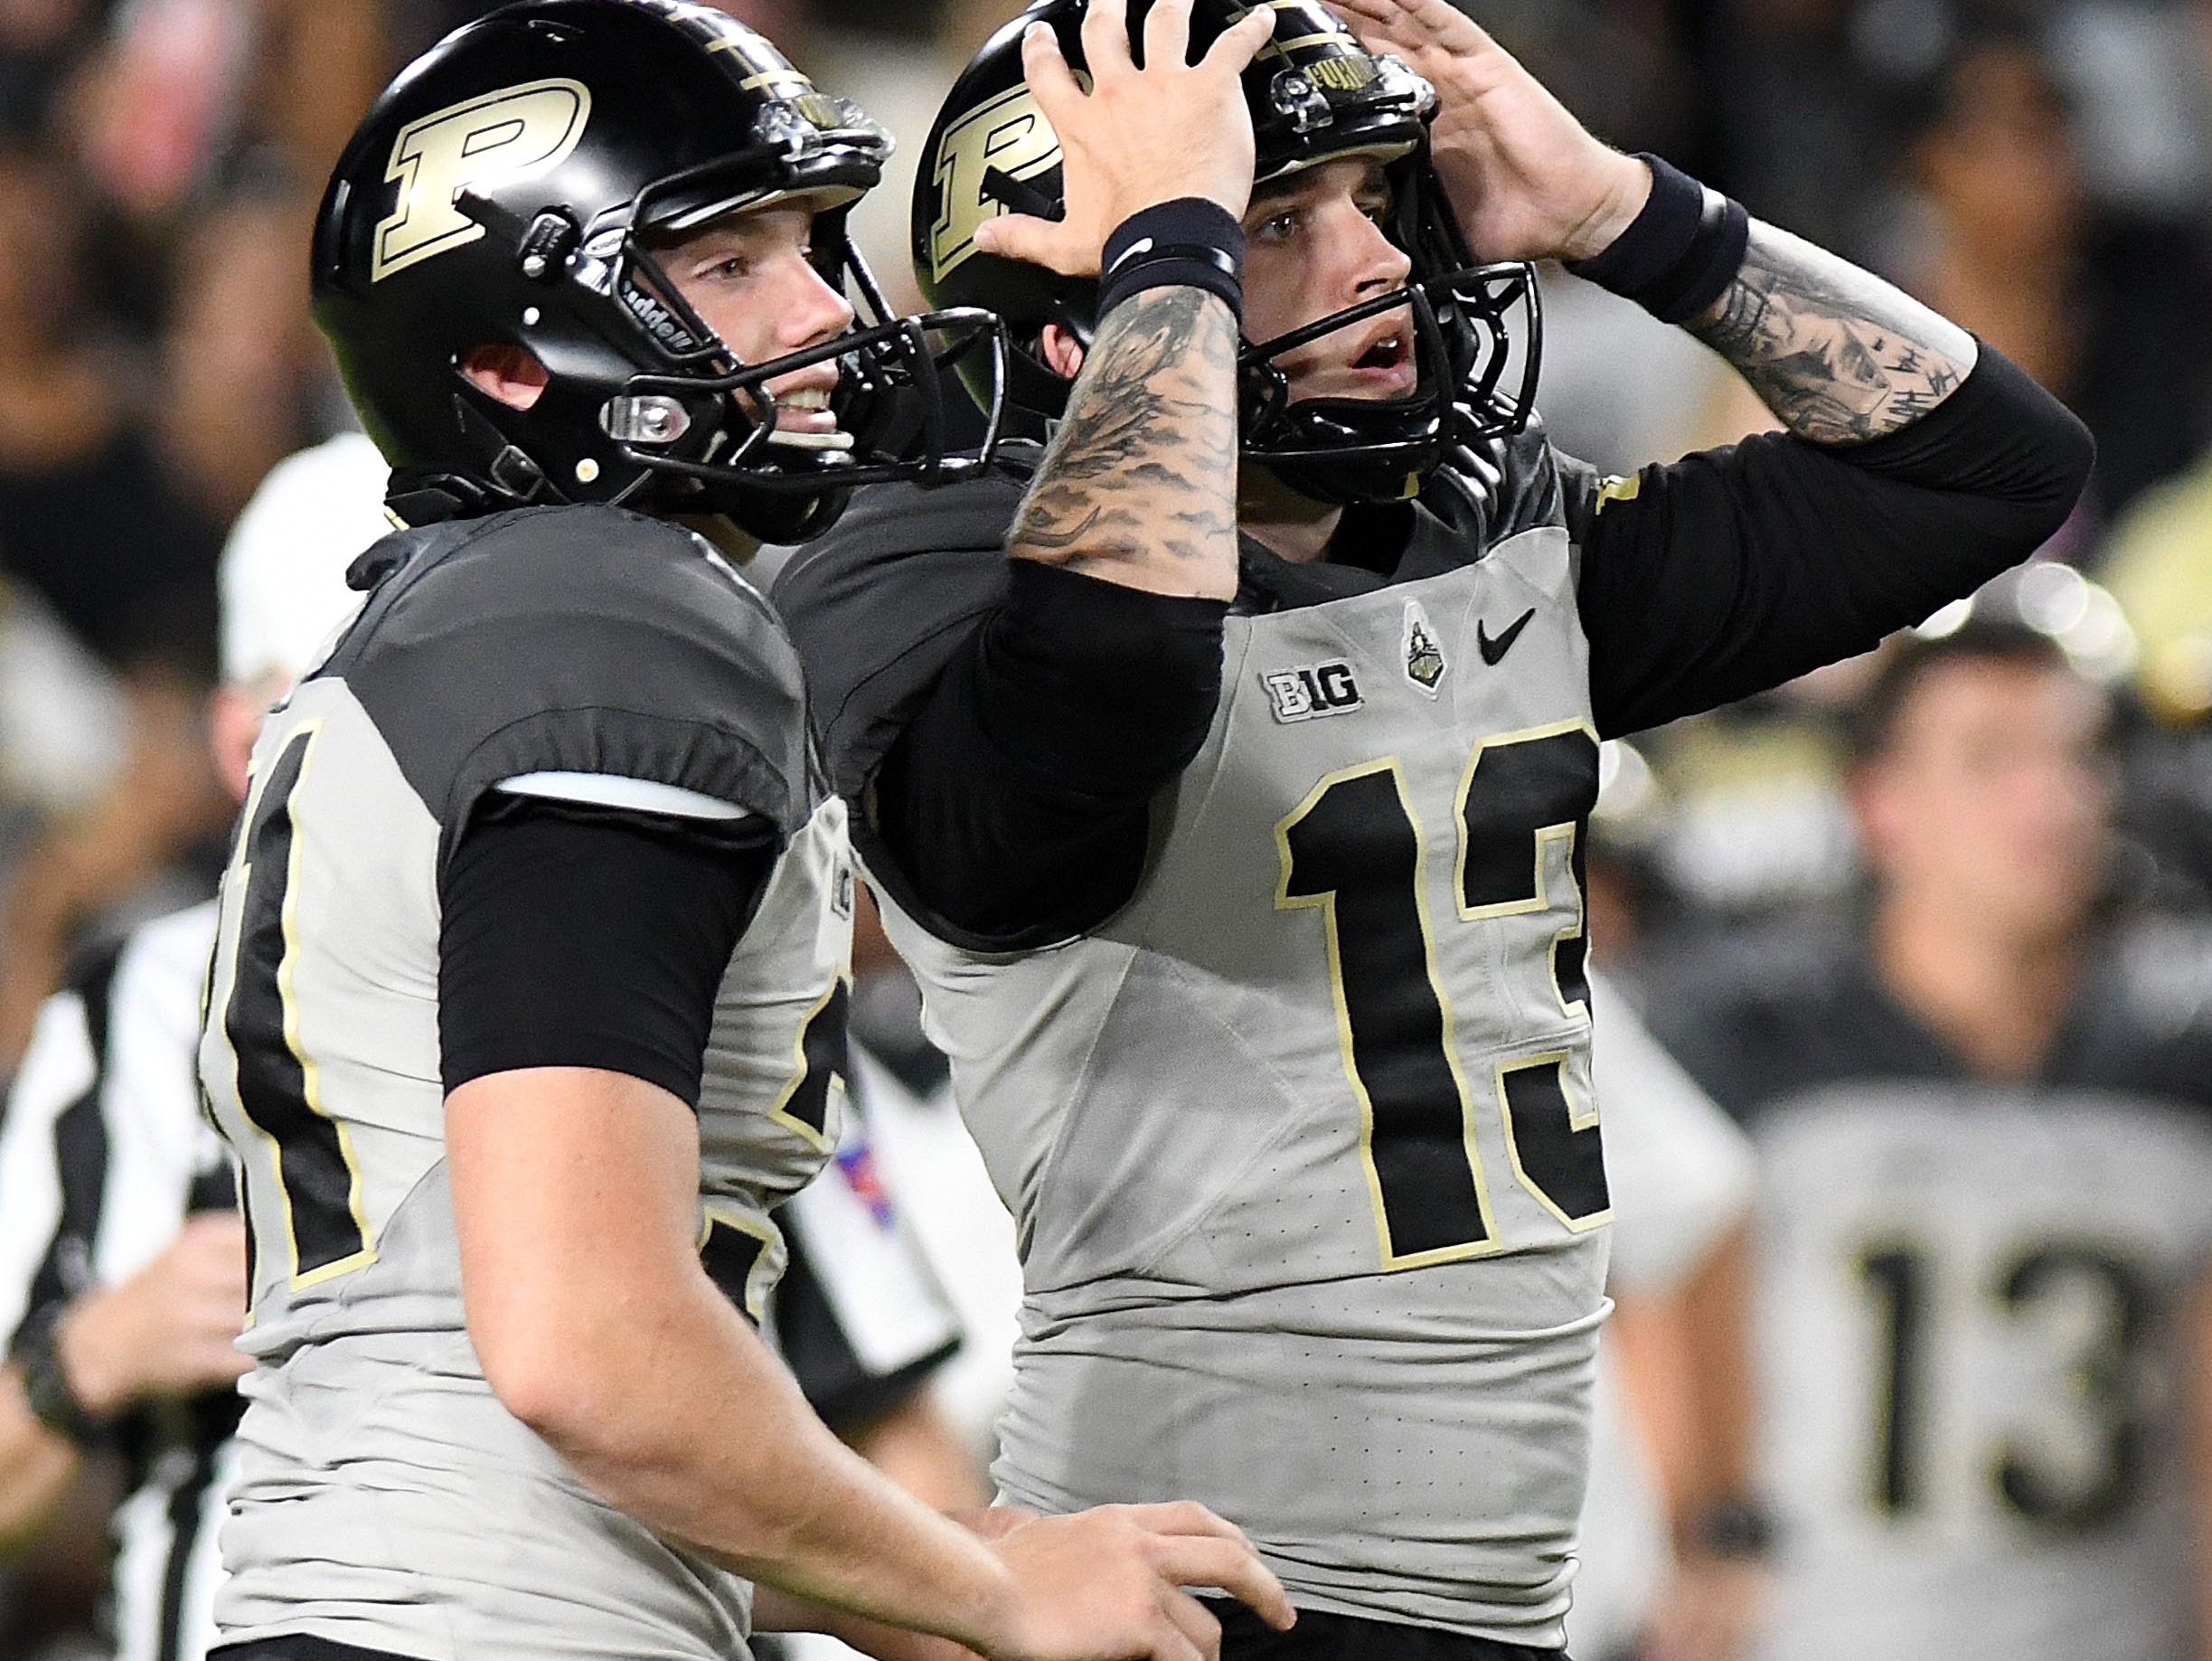 Purdue Boilermakers kicker Spencer Evans (13) reacts after missing a field goal attempt in the second half against the Missouri Tigers at Ross-Ade Stadium.